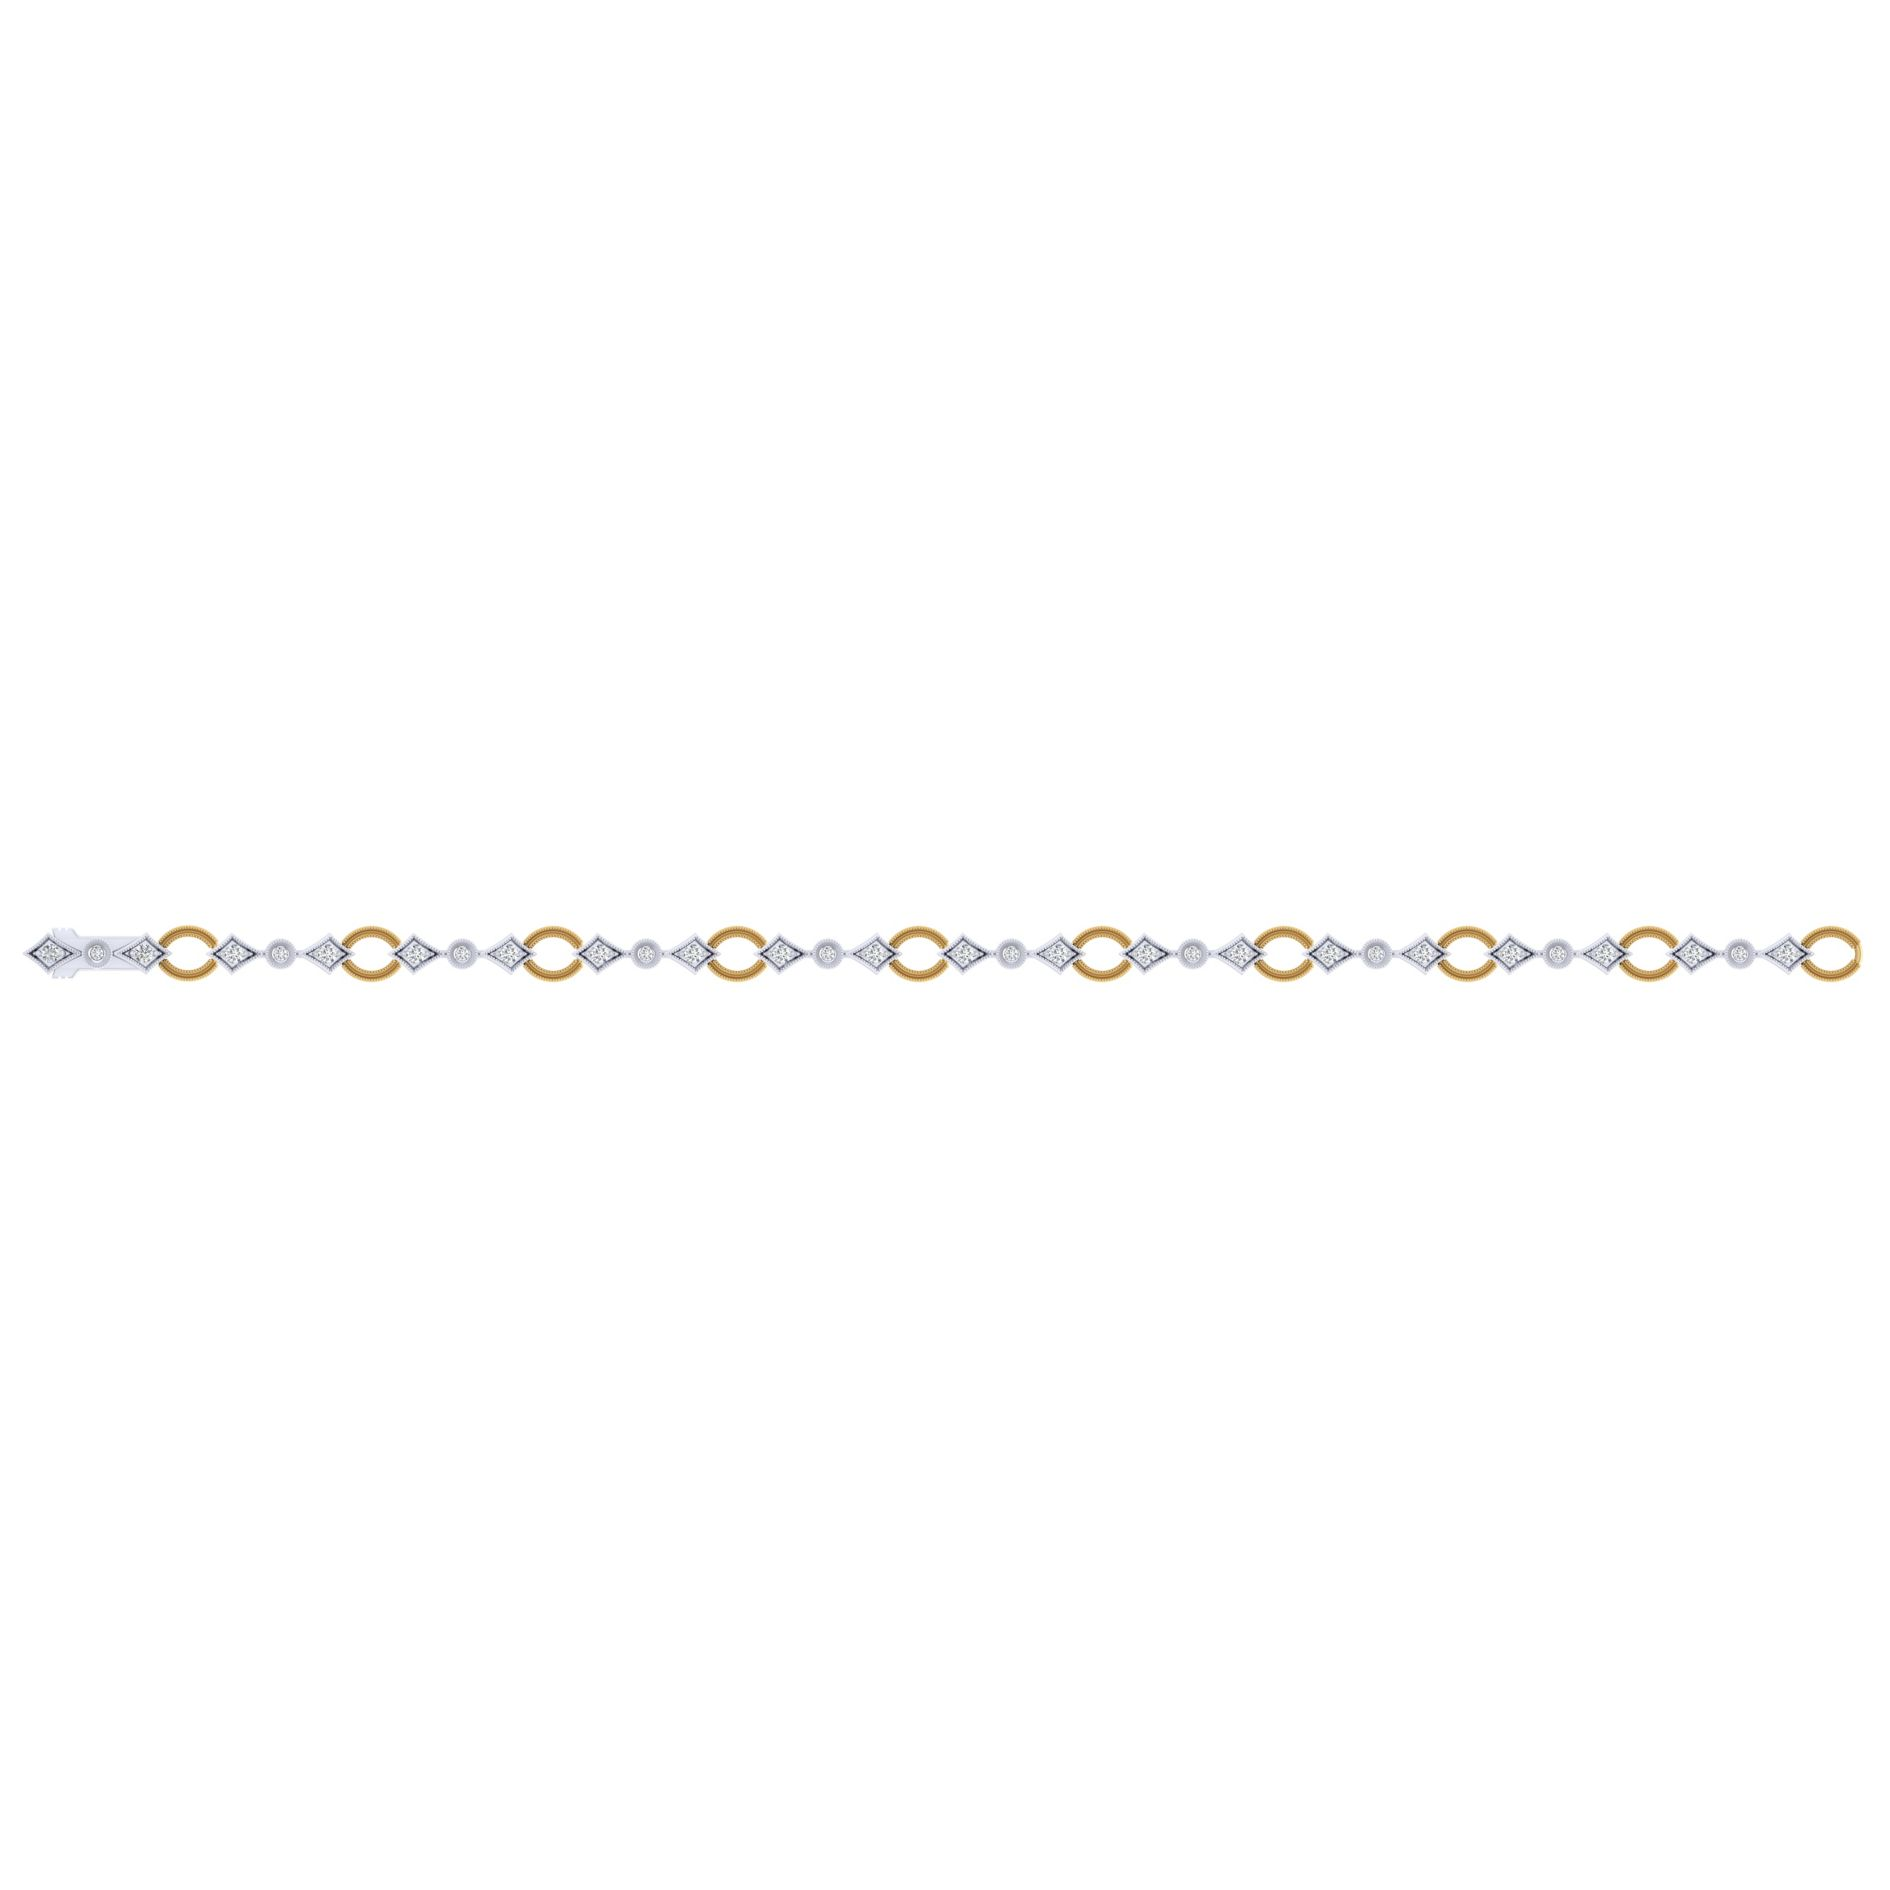 Bracelets - YELLOW/WHITE GOLD TENNIS DIAMOND BRACELET - image #3